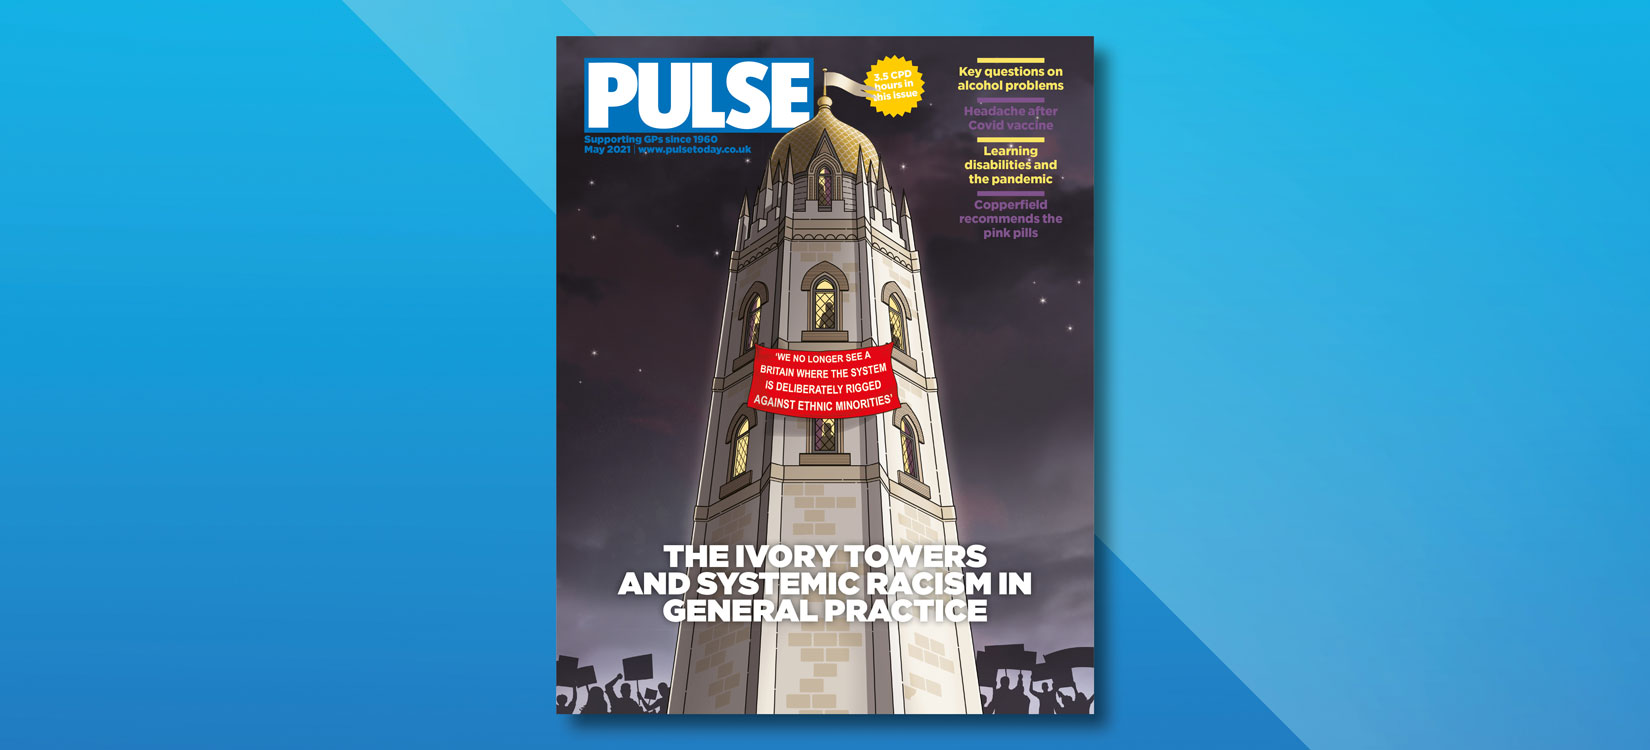 Pulse May cover